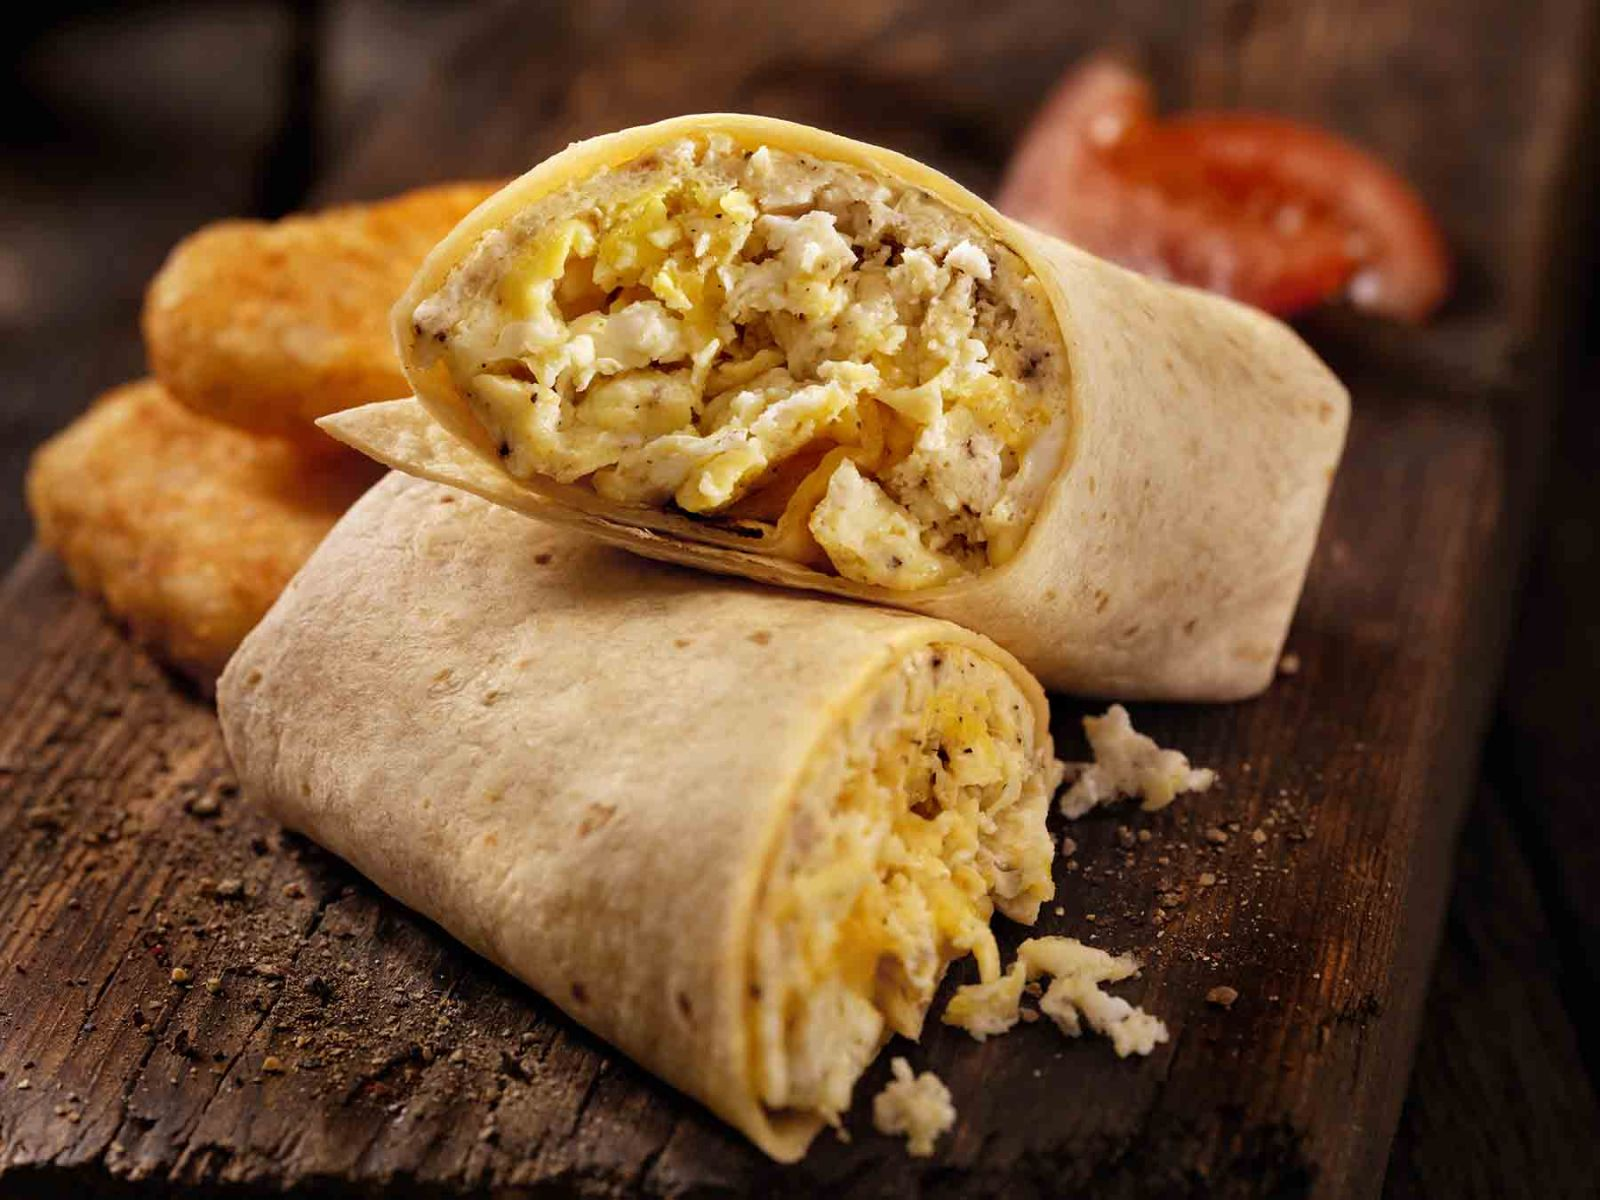 Breakfast wrap with eggs and cheese